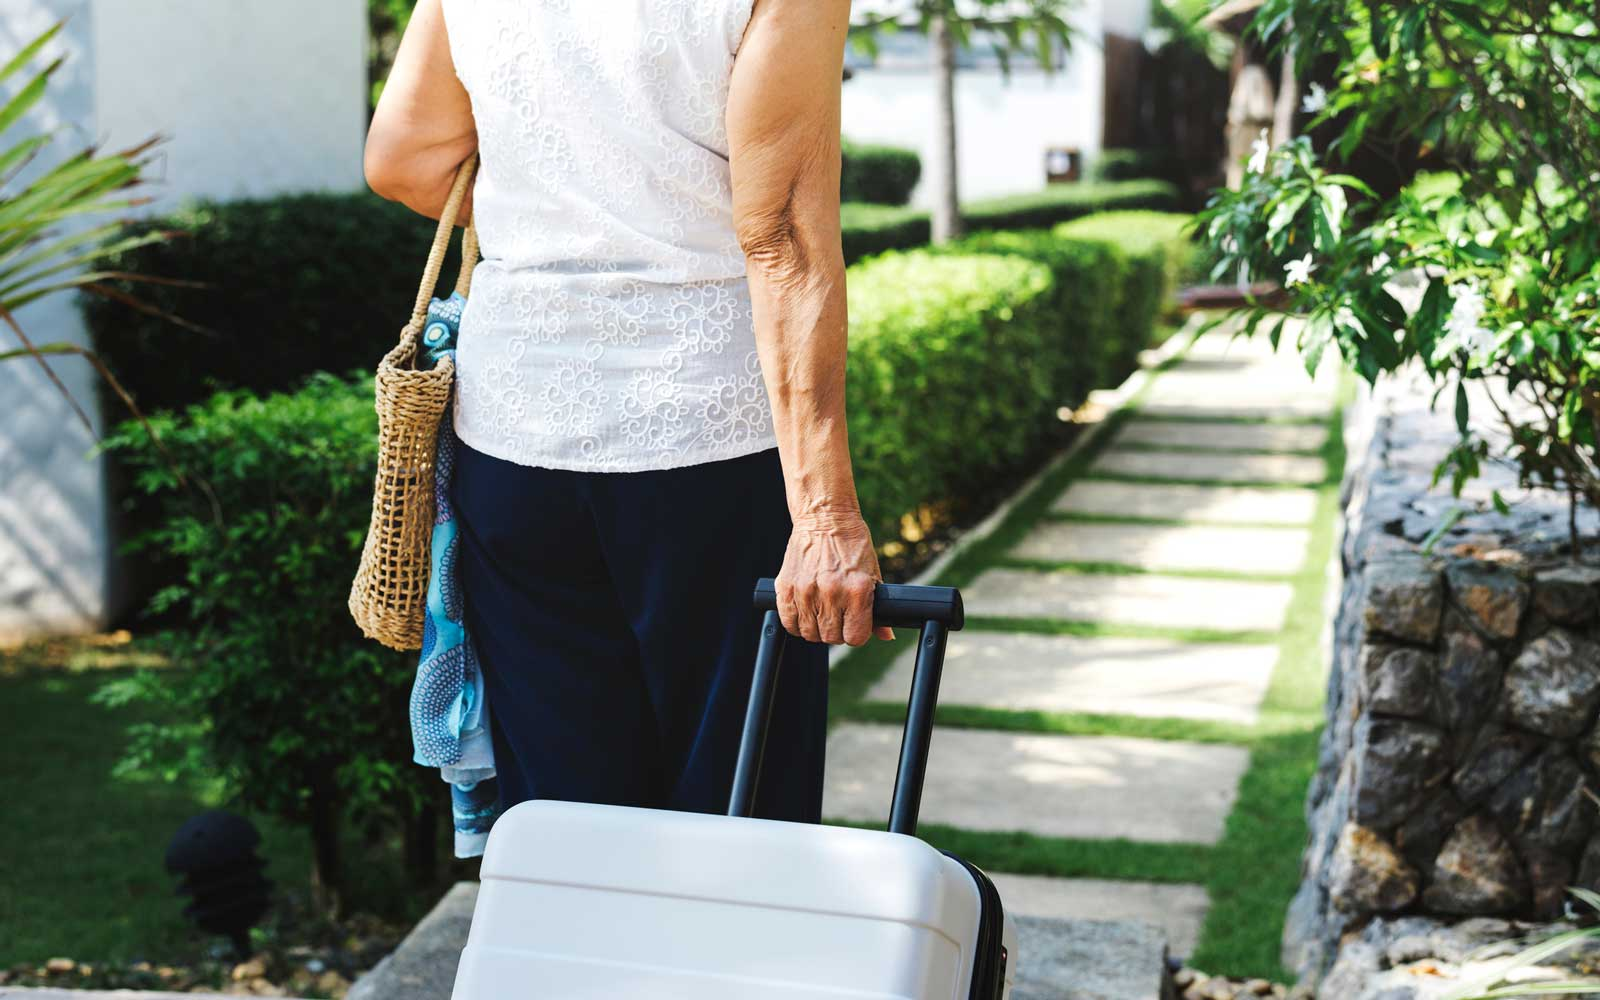 Senior woman pulling suitcase and walking